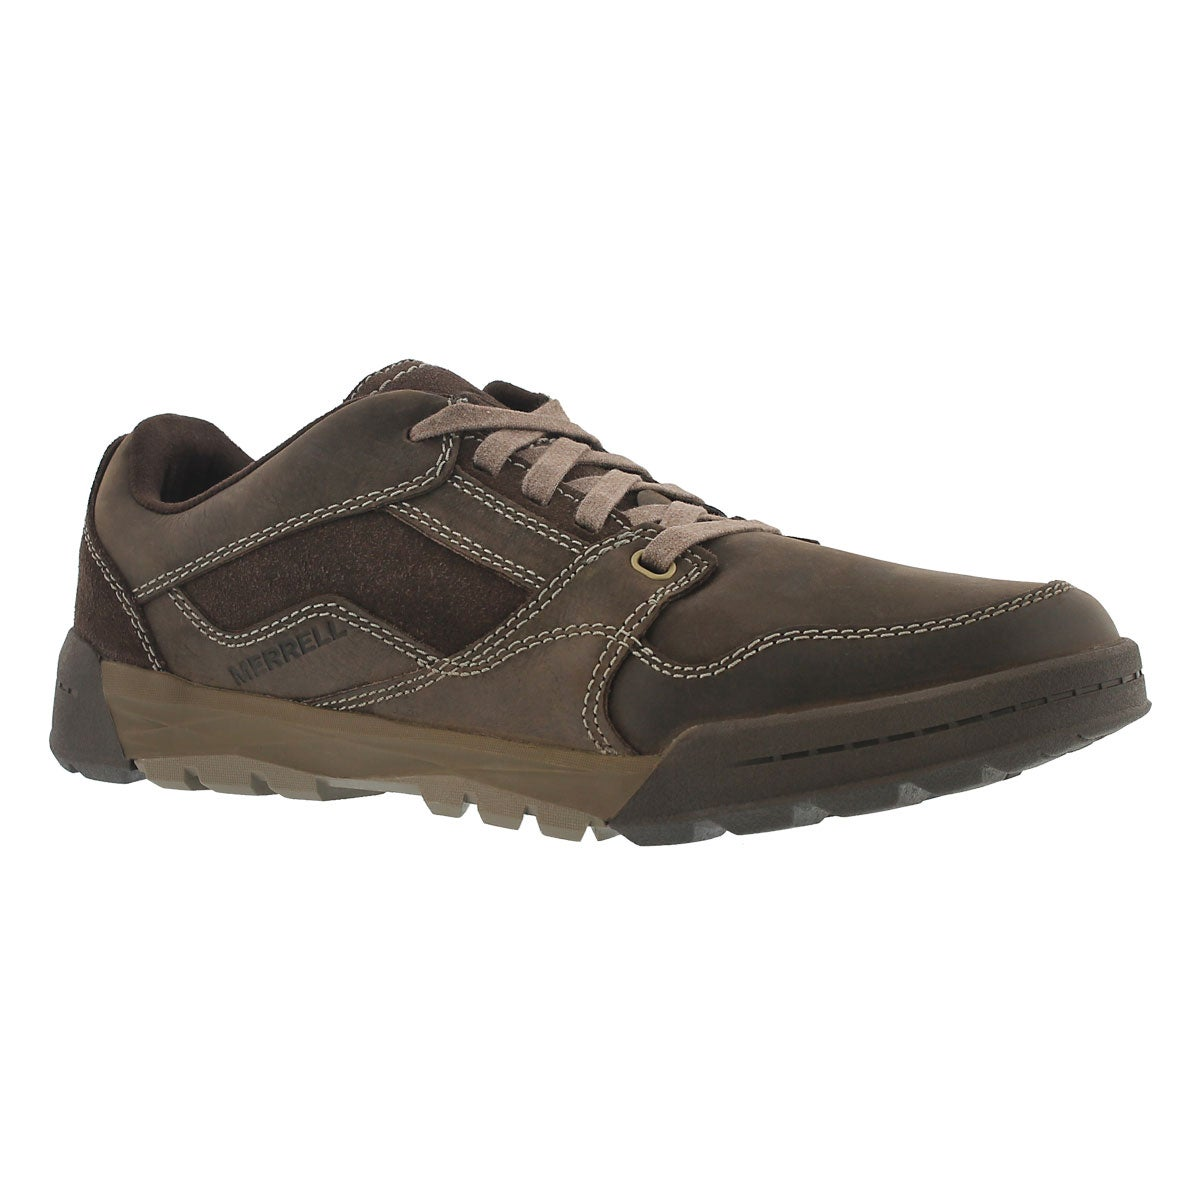 Men's BERNER LACE espresso hiking shoes